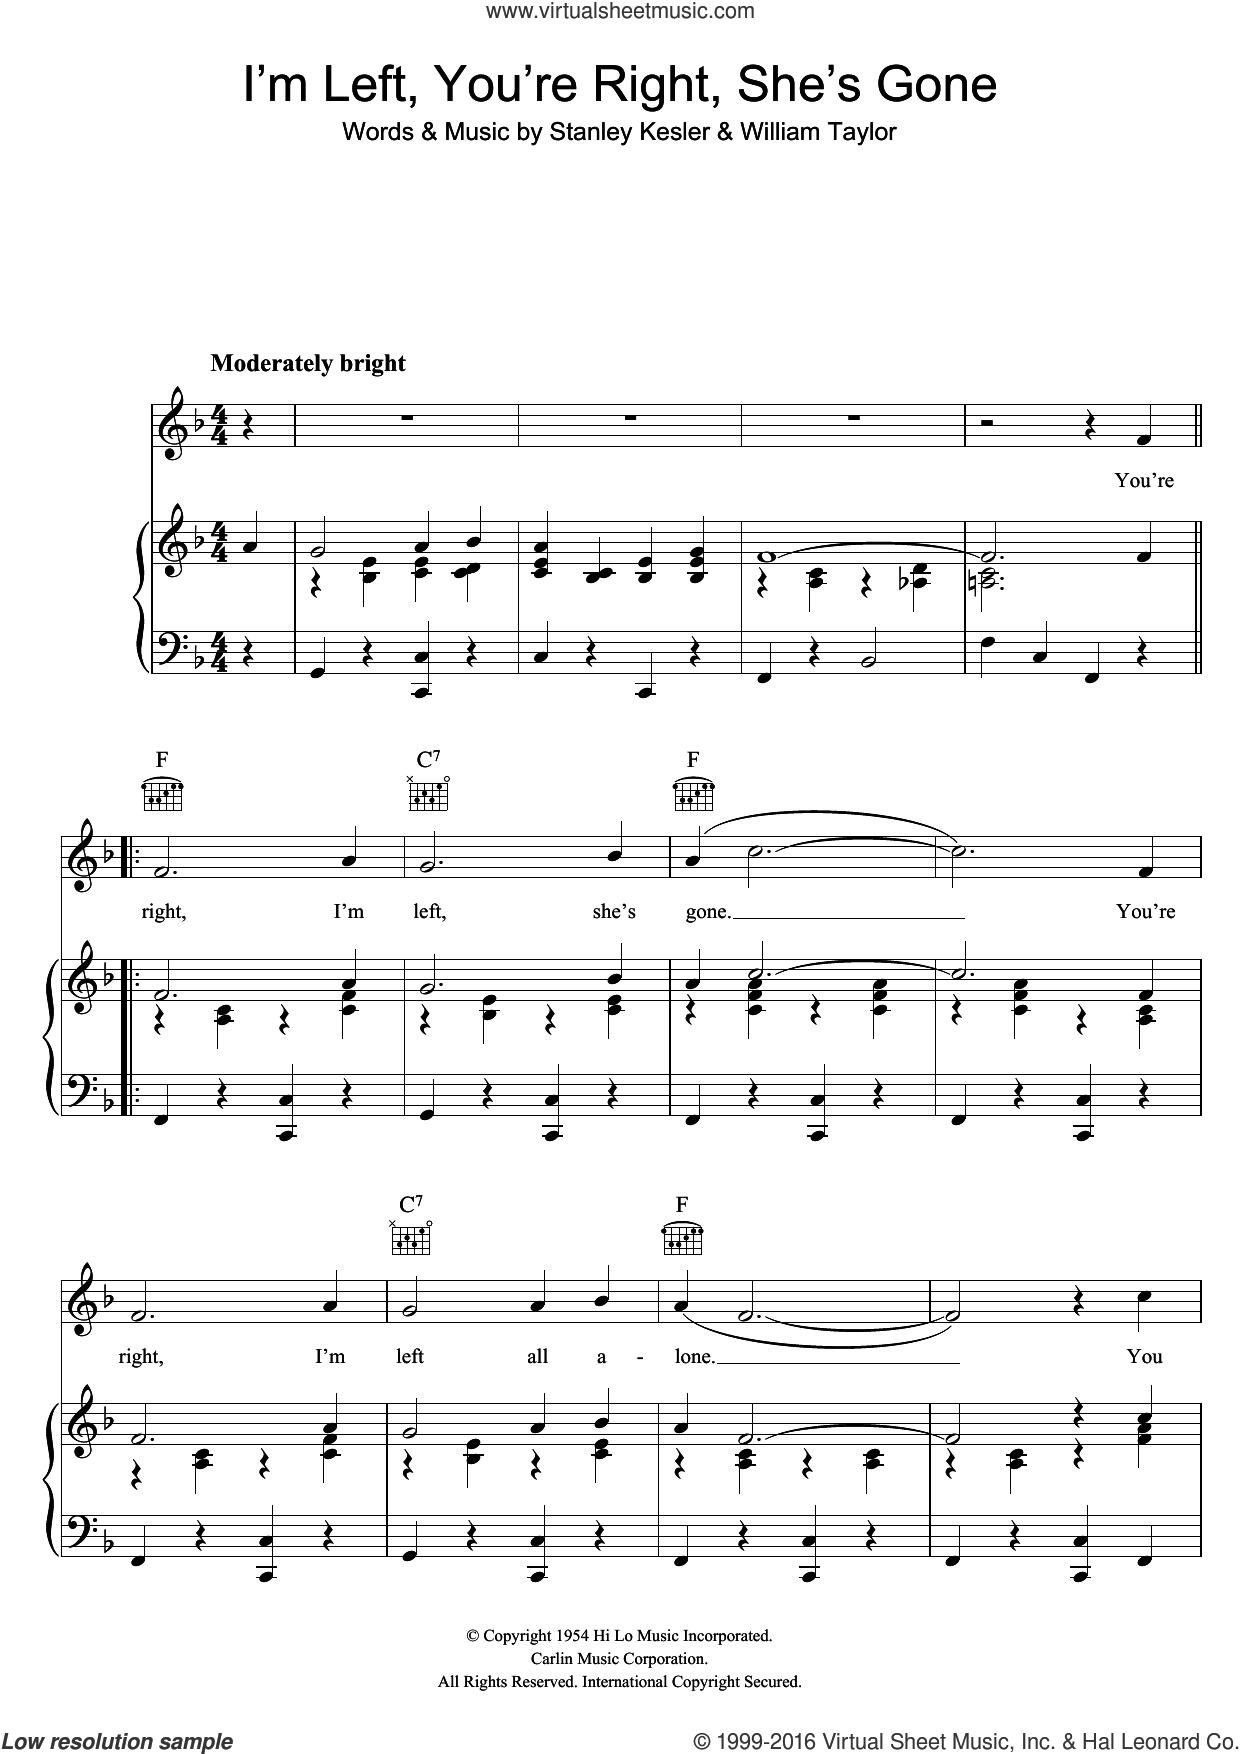 I'm Left, You're Right, She's Gone sheet music for voice, piano or guitar by Elvis Presley, Stanley Kesler and William Taylor, intermediate skill level